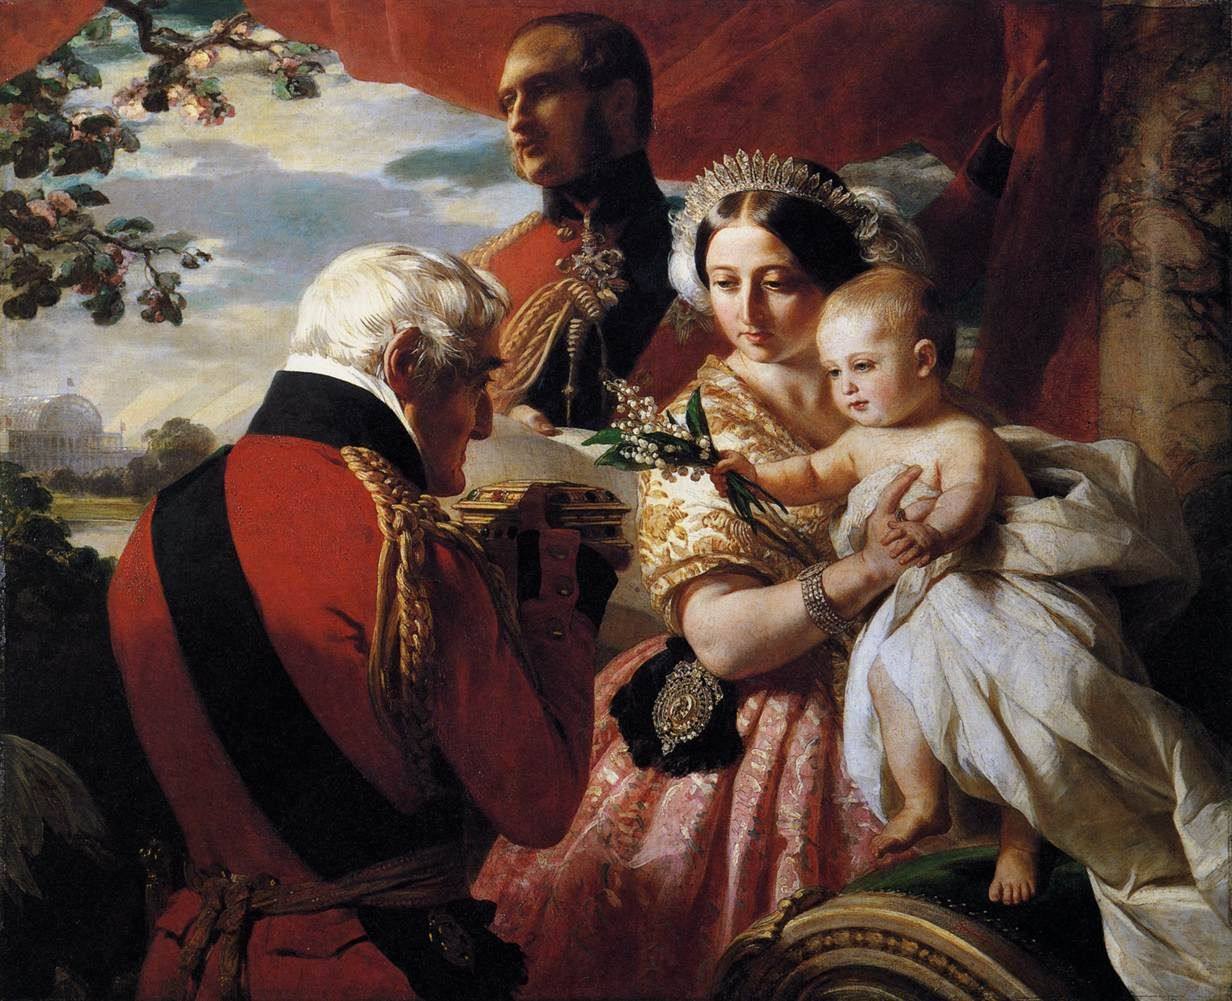 Prince Frederick Dodge >> Franz Xaver Winterhalter, The First of May 1851, 1851, Oil ...